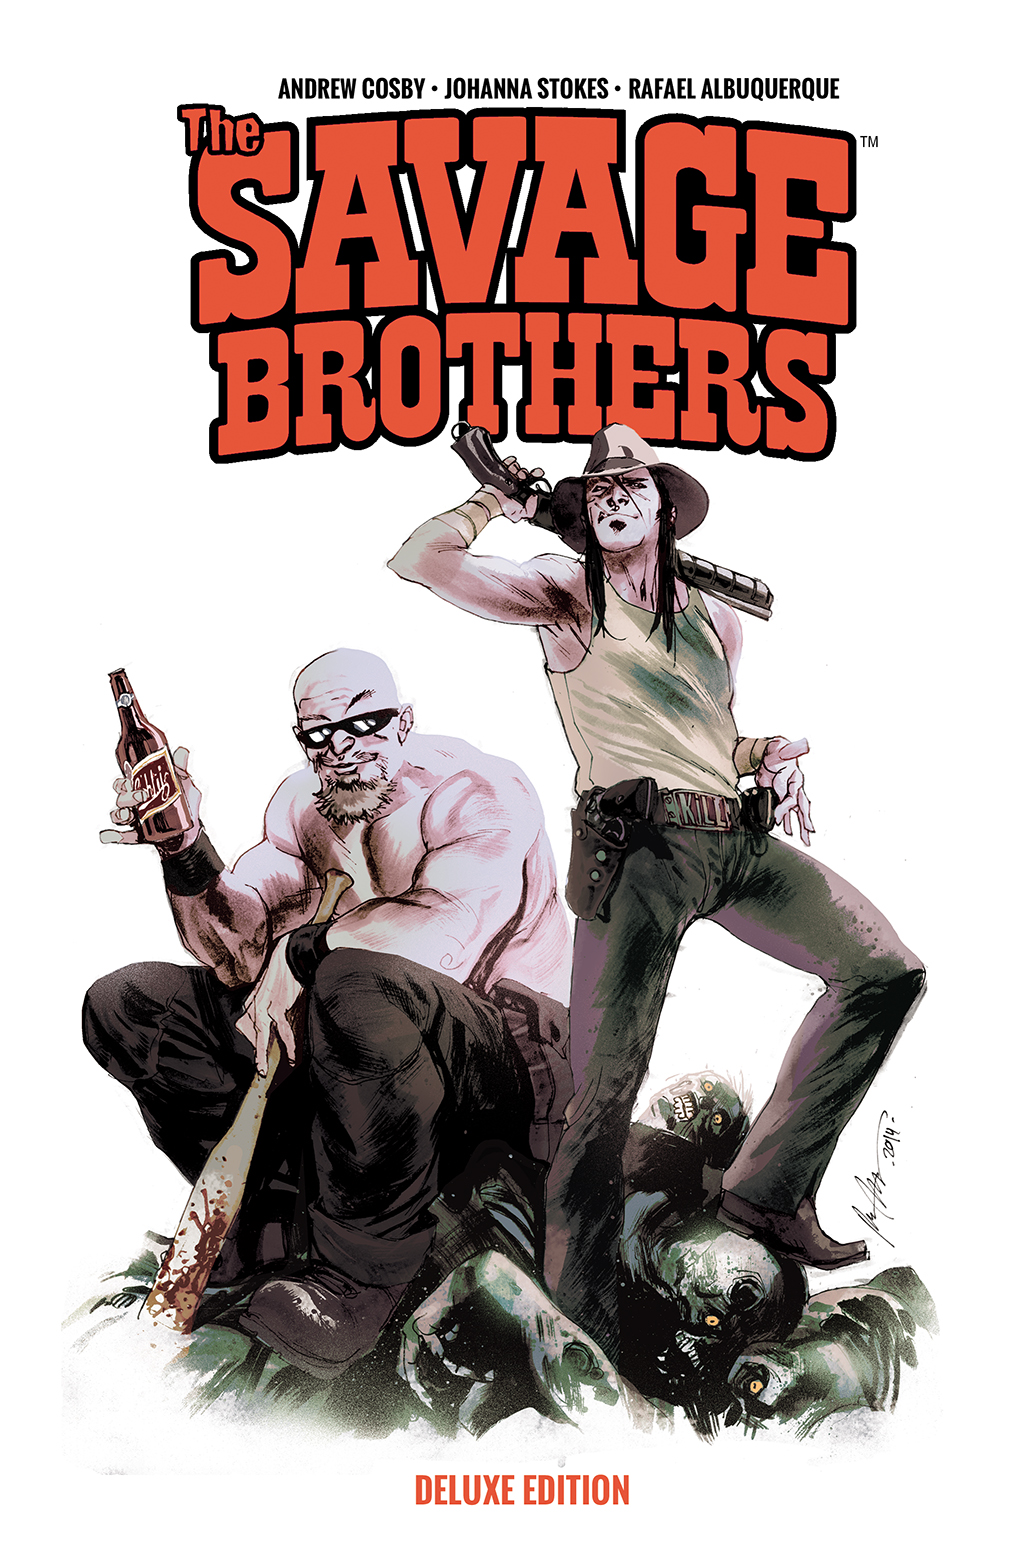 THE SAVAGE BROTHERS DELUXE EDITION TP Cover by Rafael Albuquerque title=